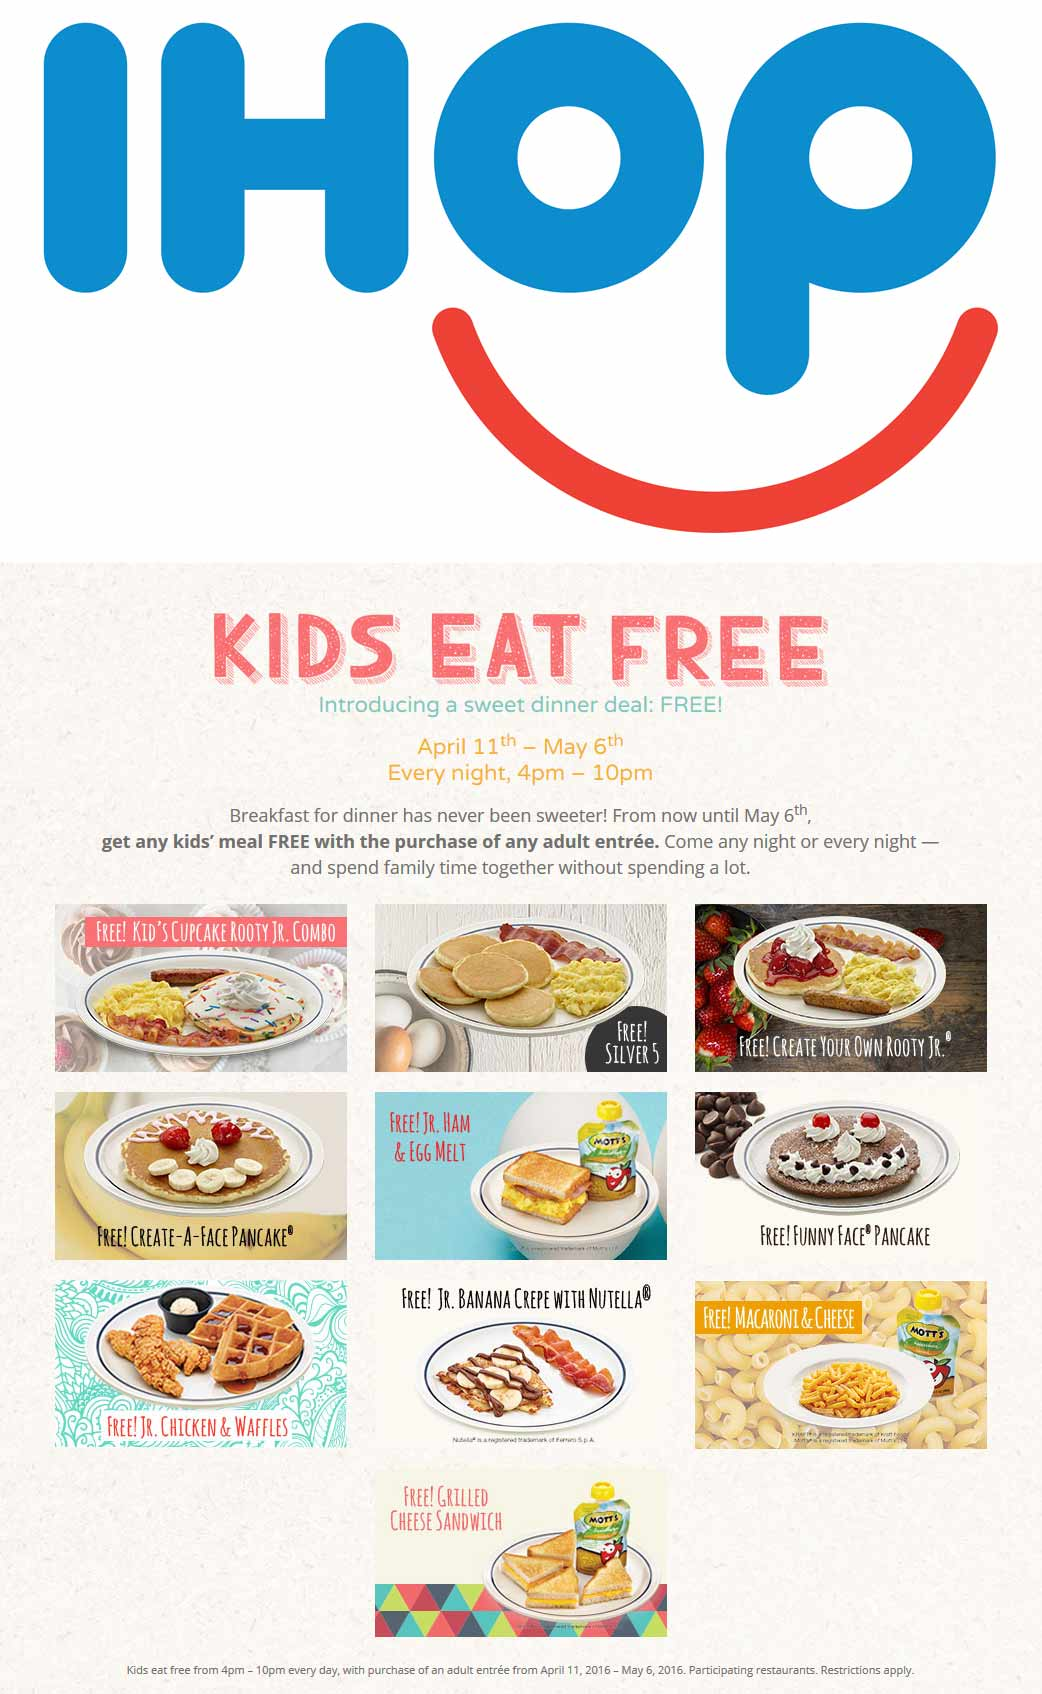 IHOP Coupon September 2017 Kids eat free with your meal 4-10pm daily at IHOP